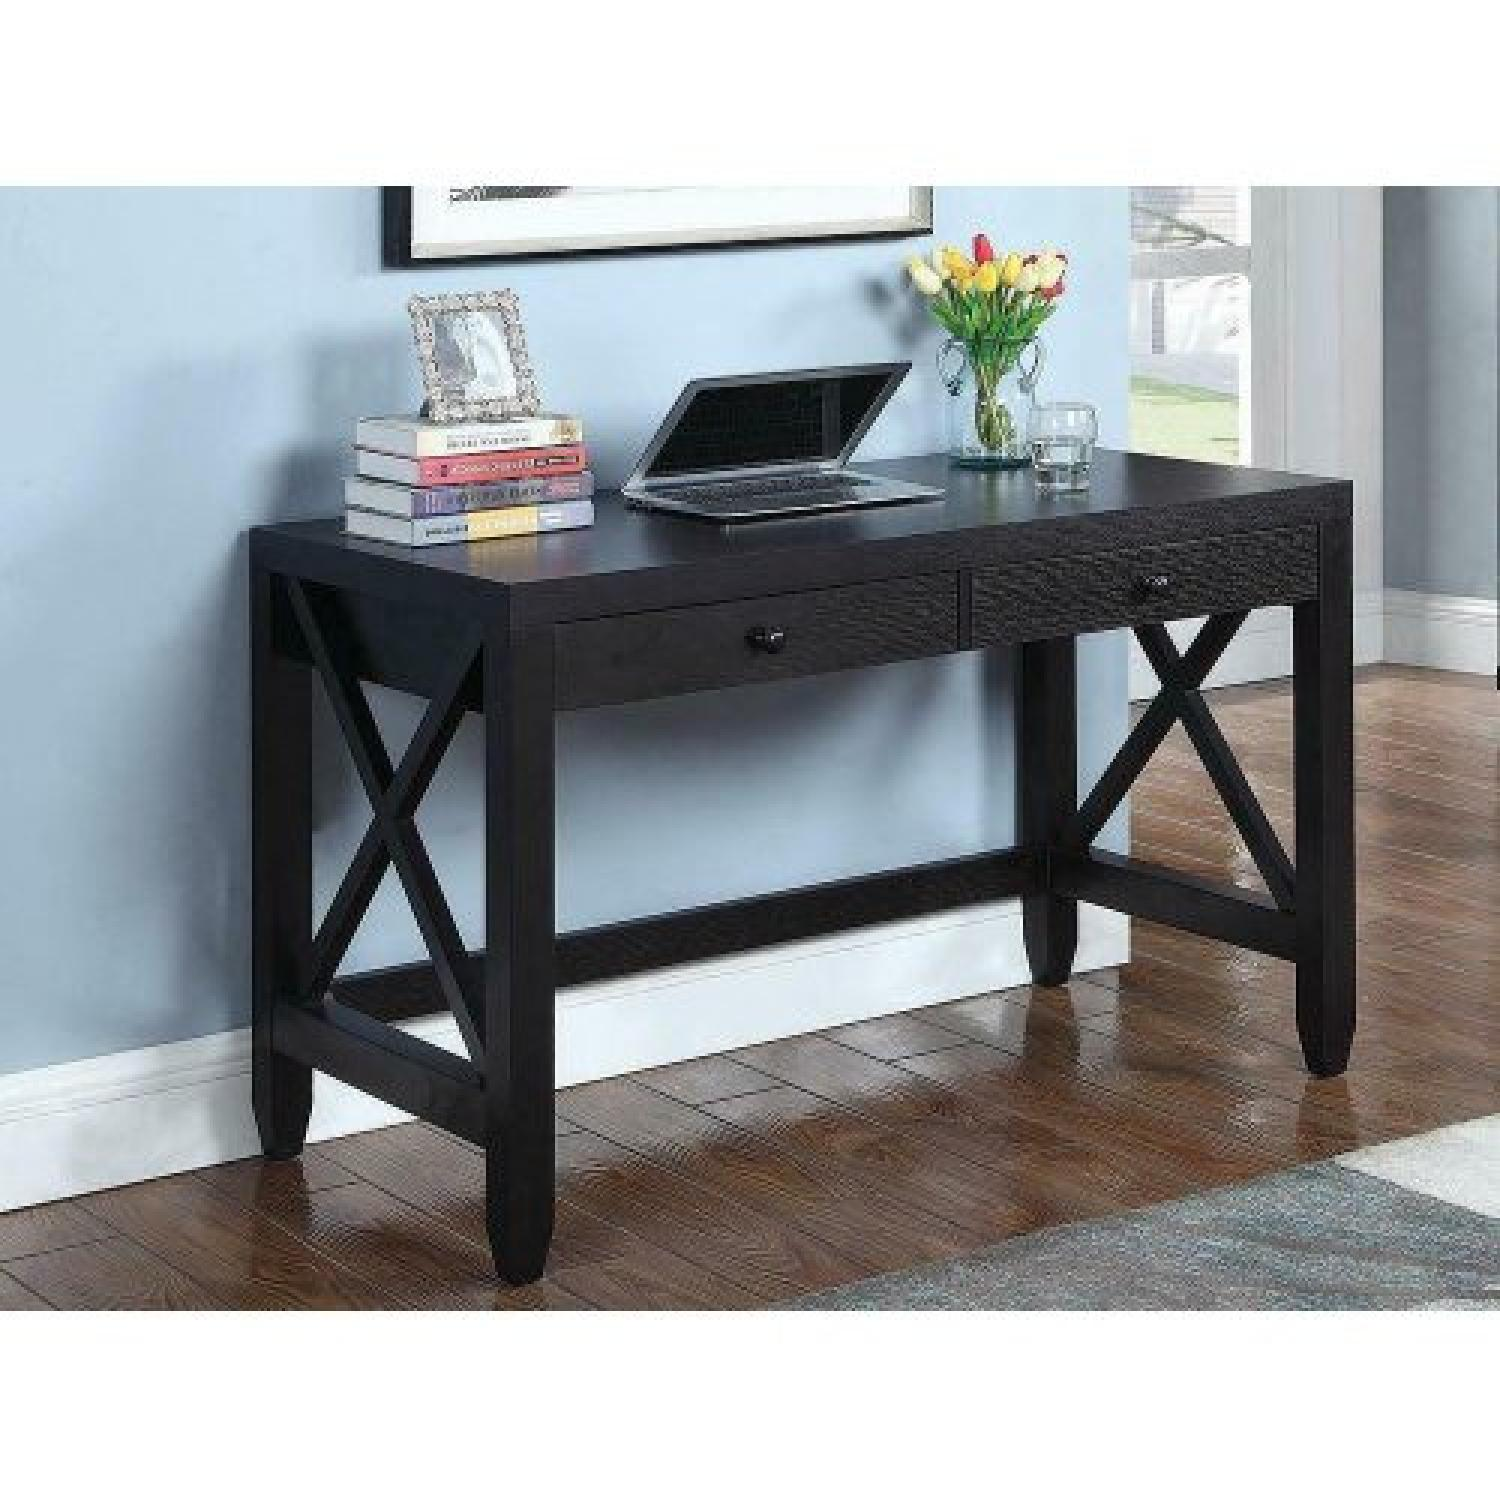 Cappuccino Writing Desk w/ X Detail - image-5